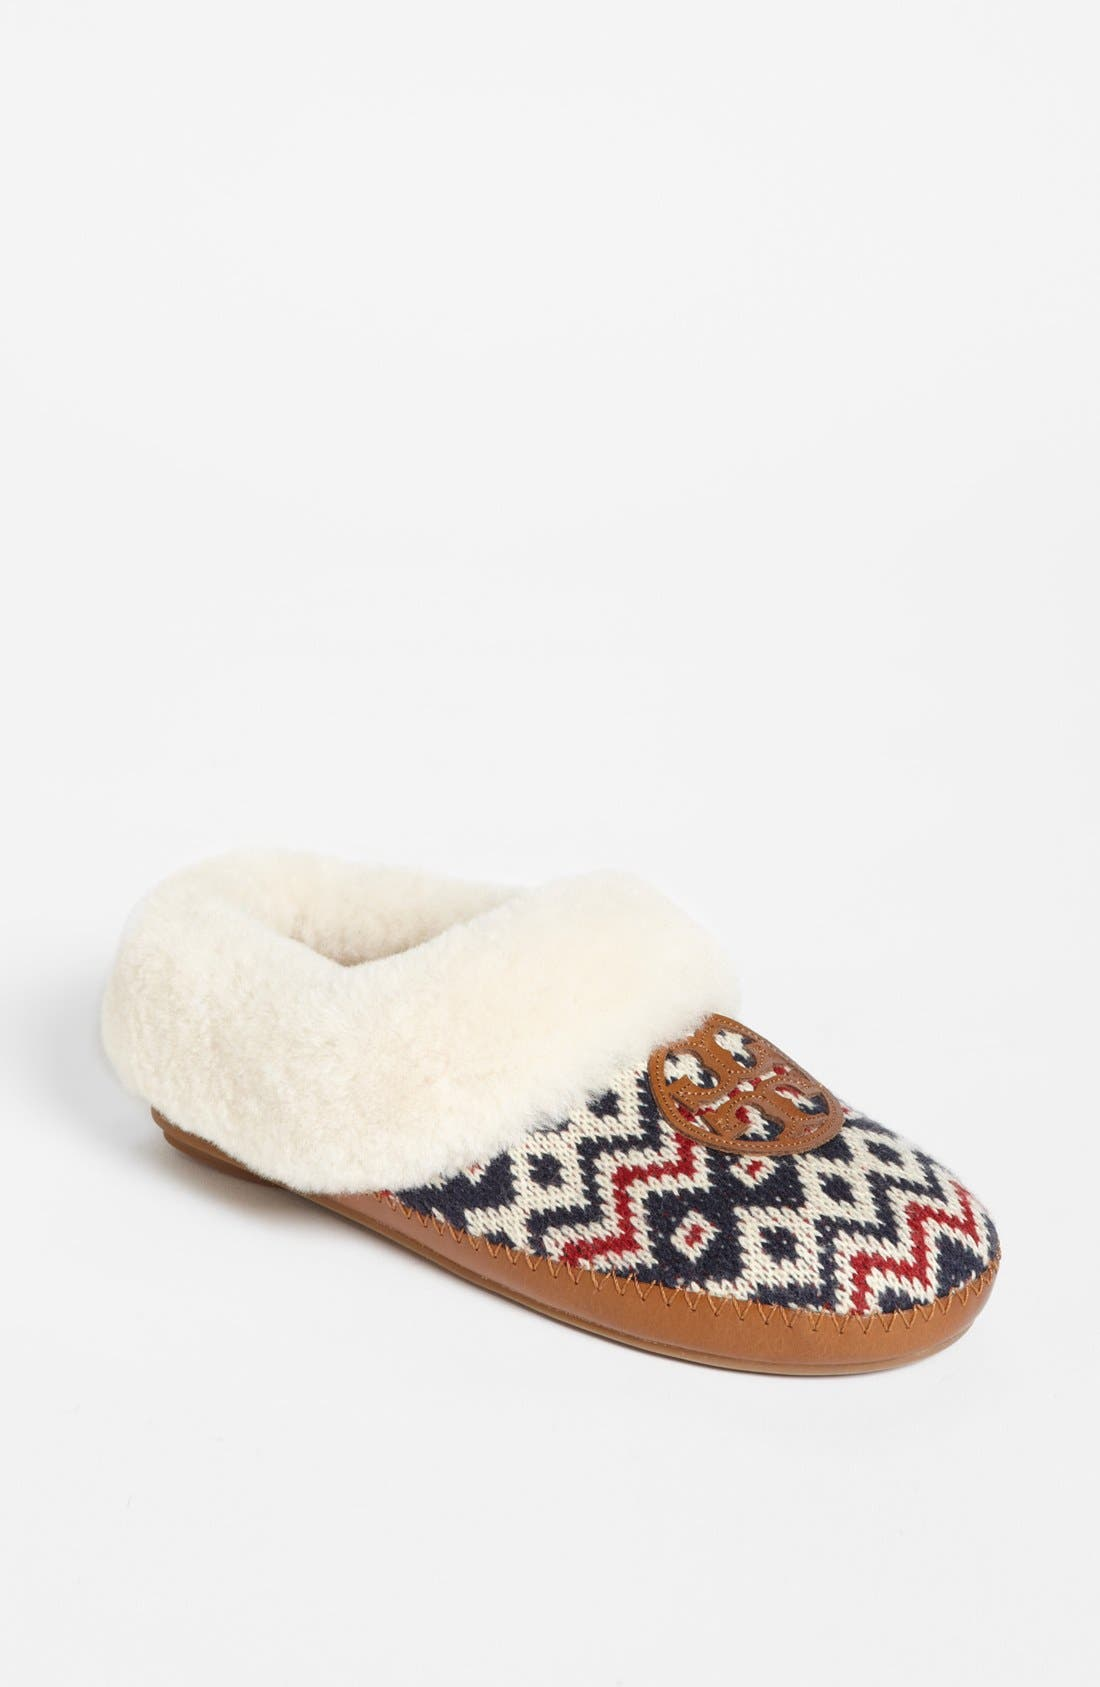 Alternate Image 1 Selected - Tory Burch 'Coley' Slipper